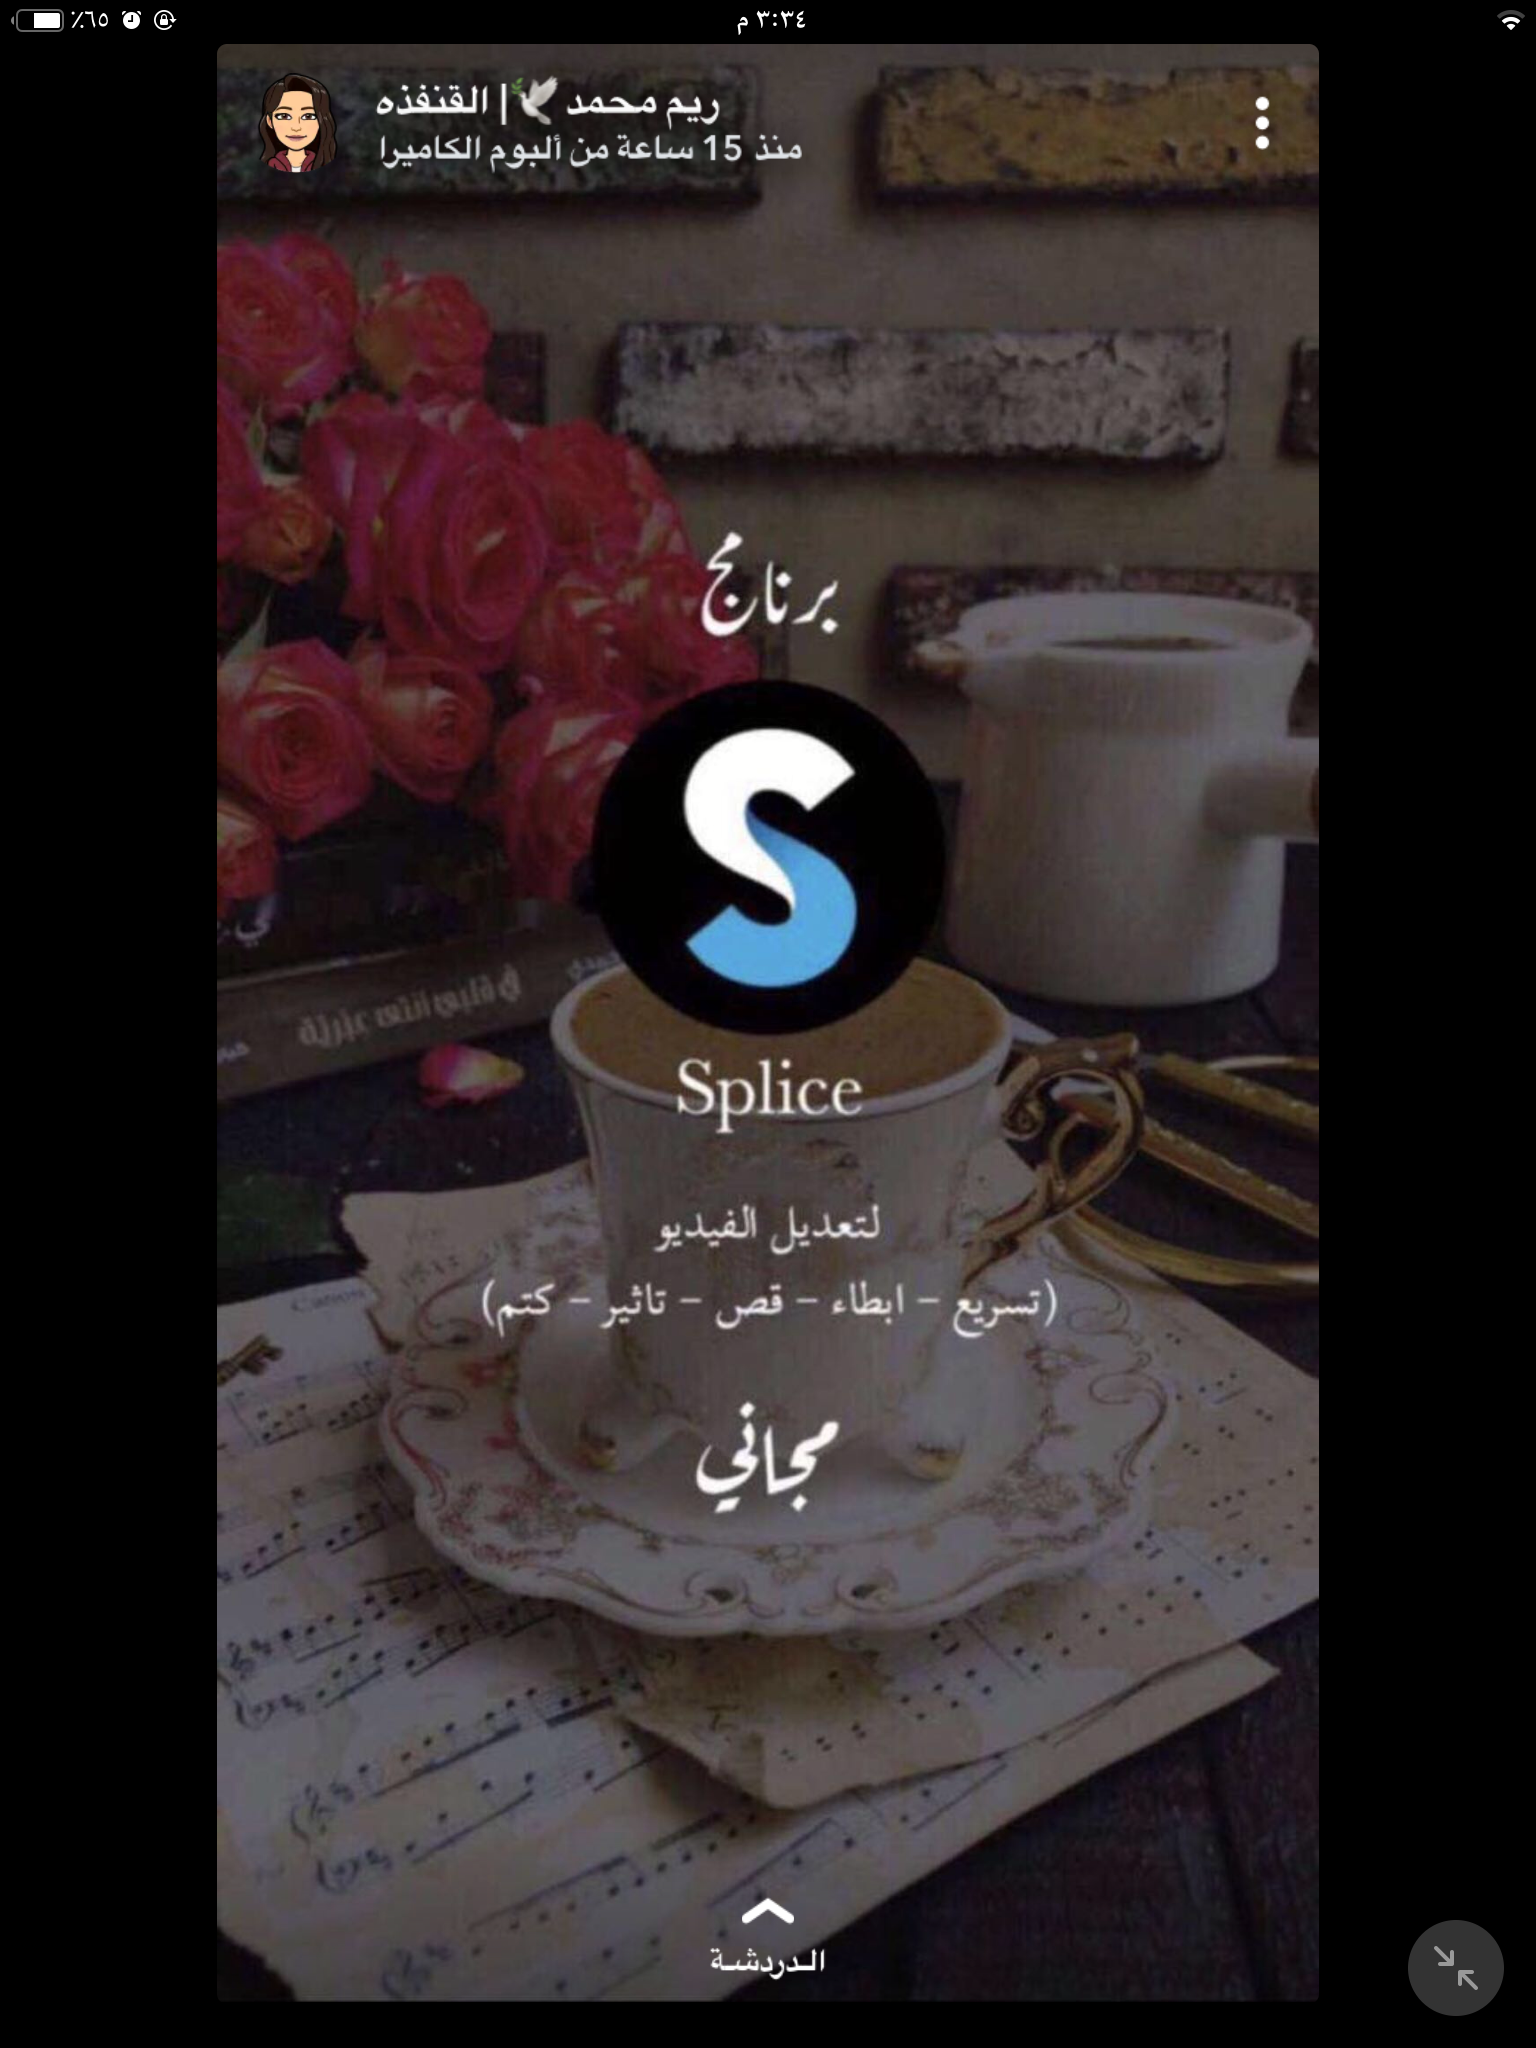 Pin by جود on تطبيقات in 2019 Iphone app layout